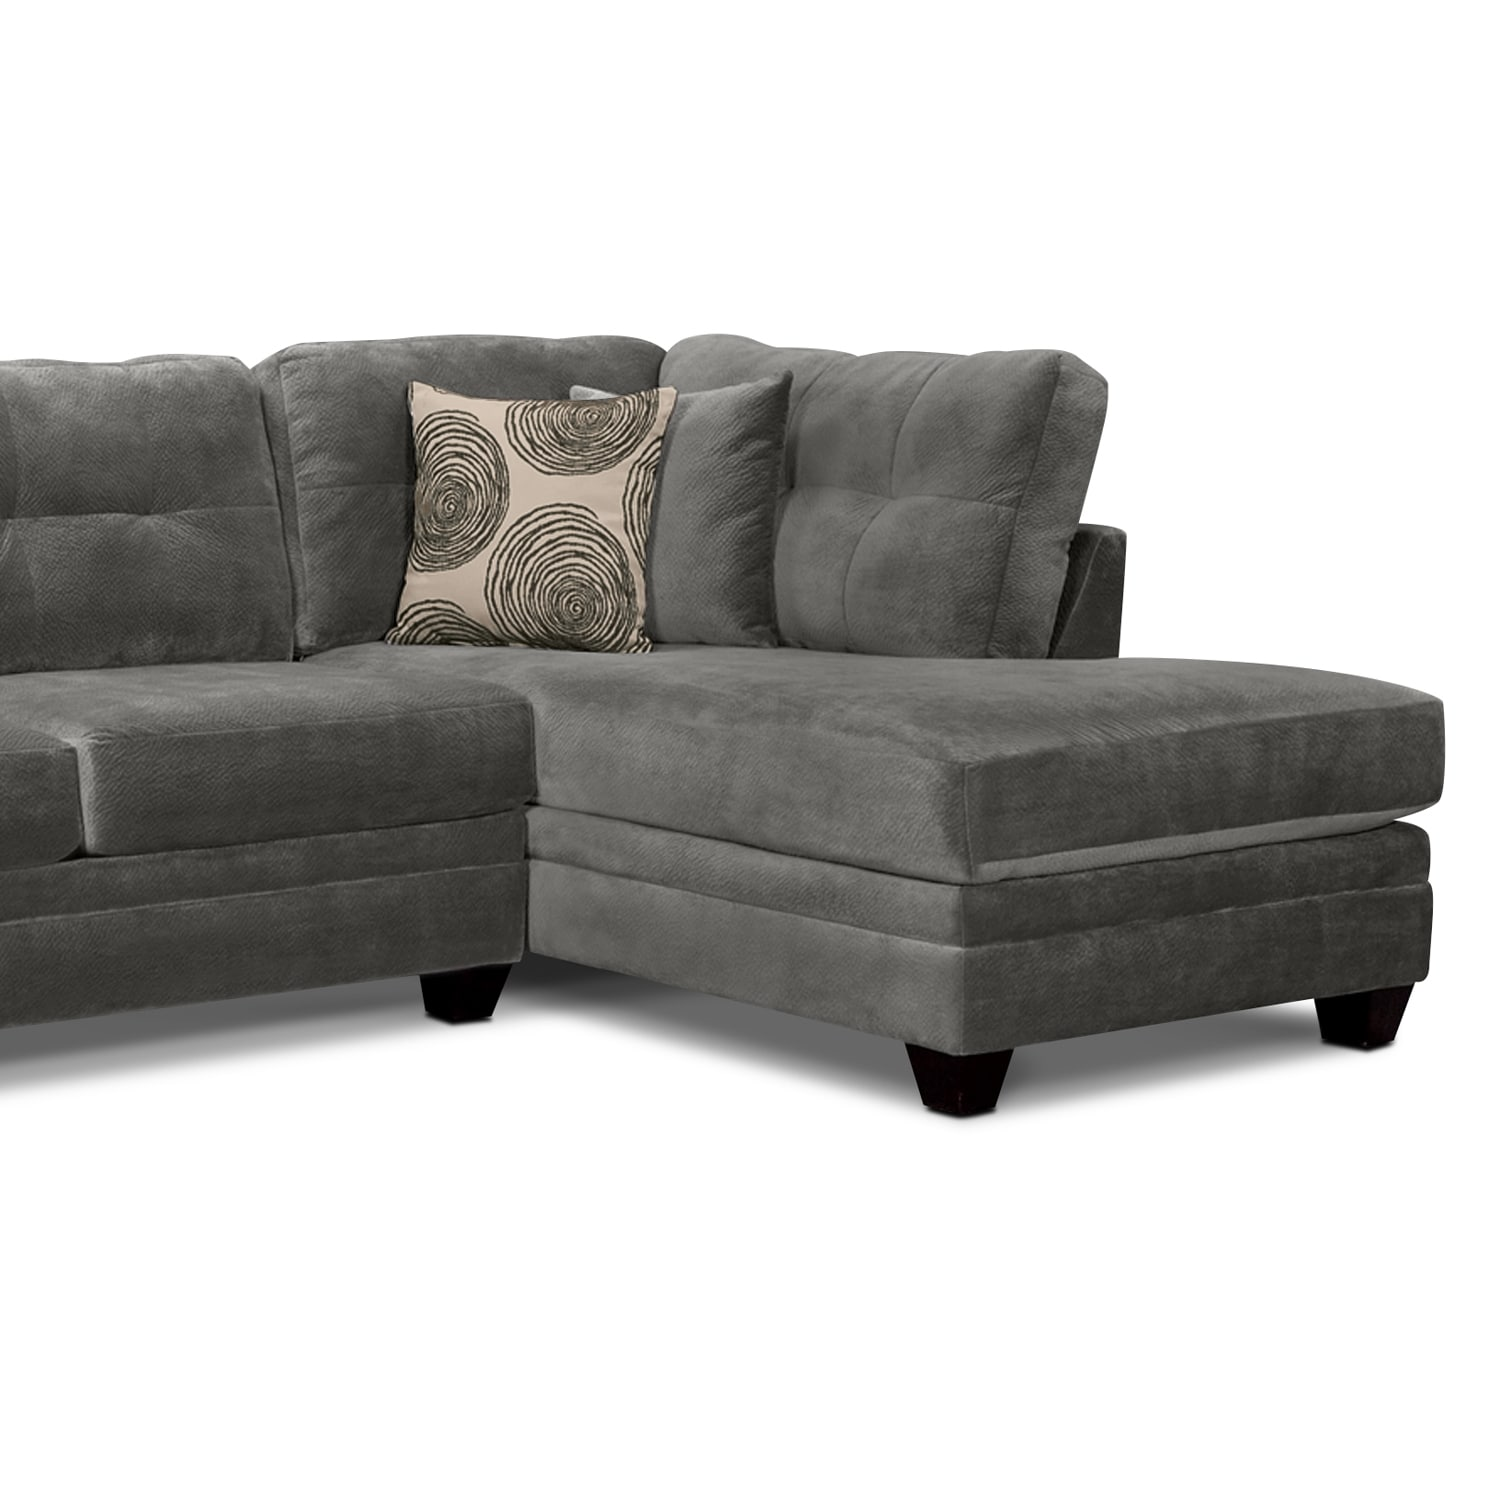 value city furniture marco chaise sofa sears sofas cordelle 2 piece right facing sectional gray